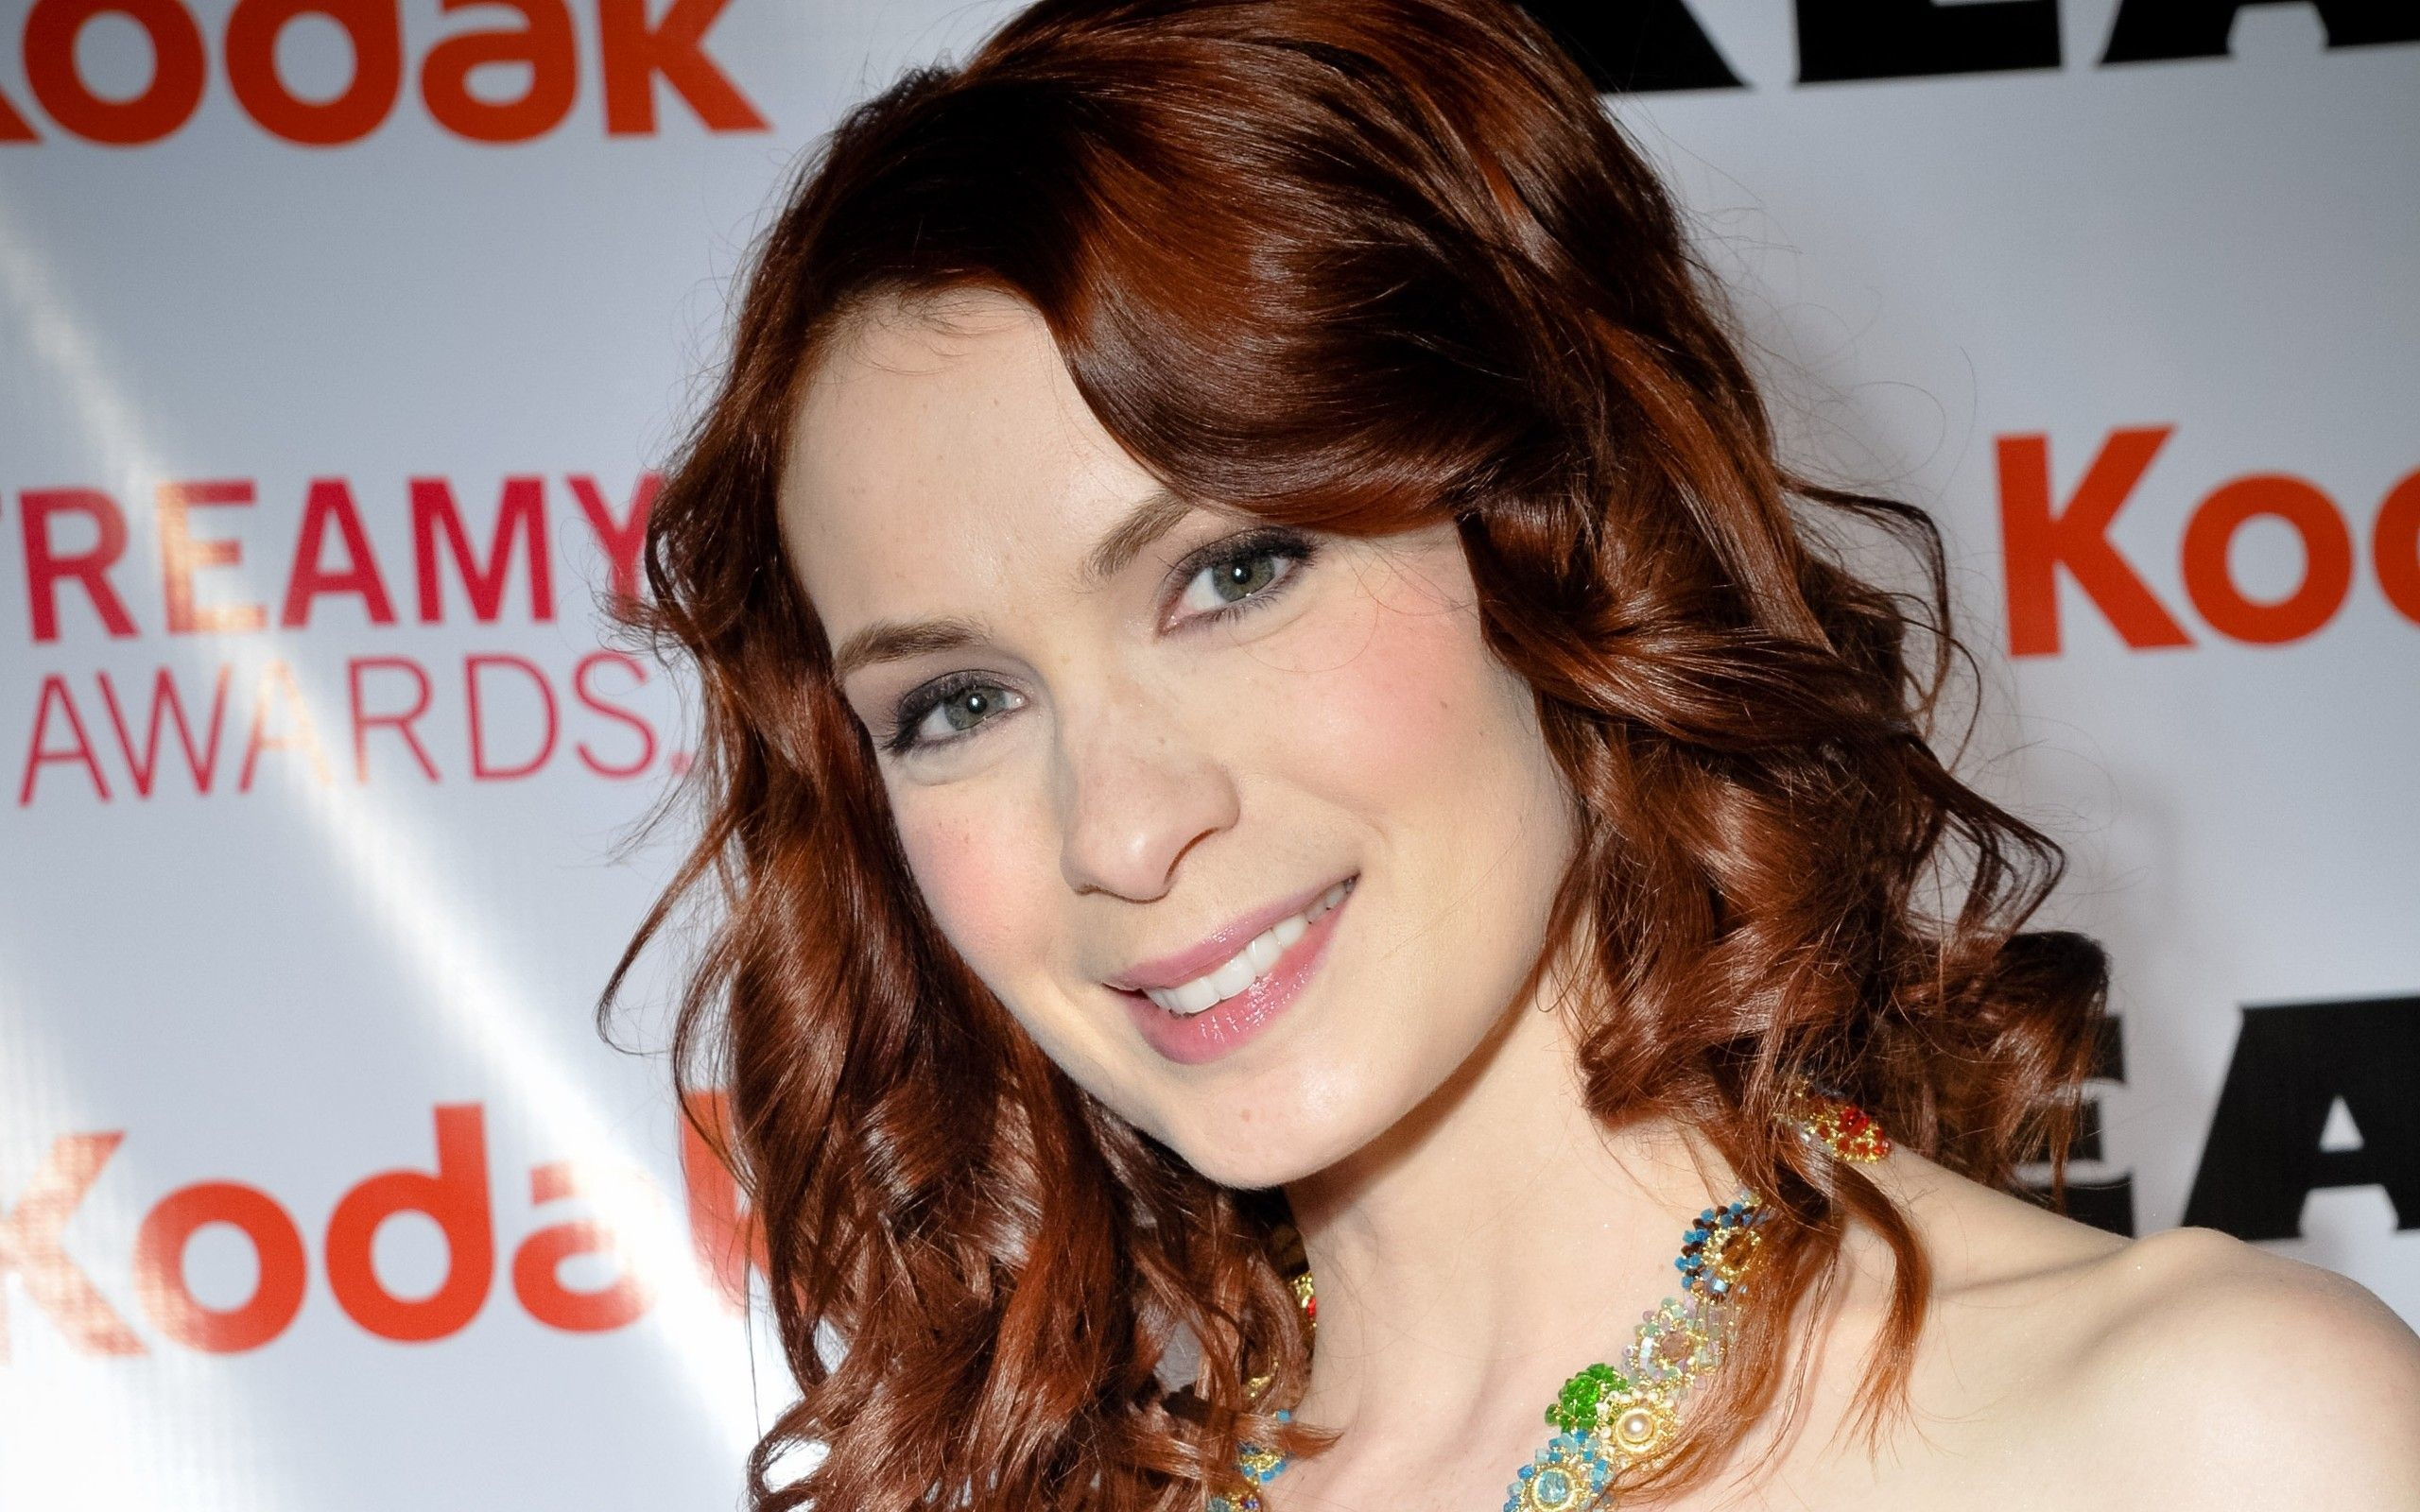 Felicia day wallpaper gallery pictures xtreme beauty – Felicia Day Kodak.  Download